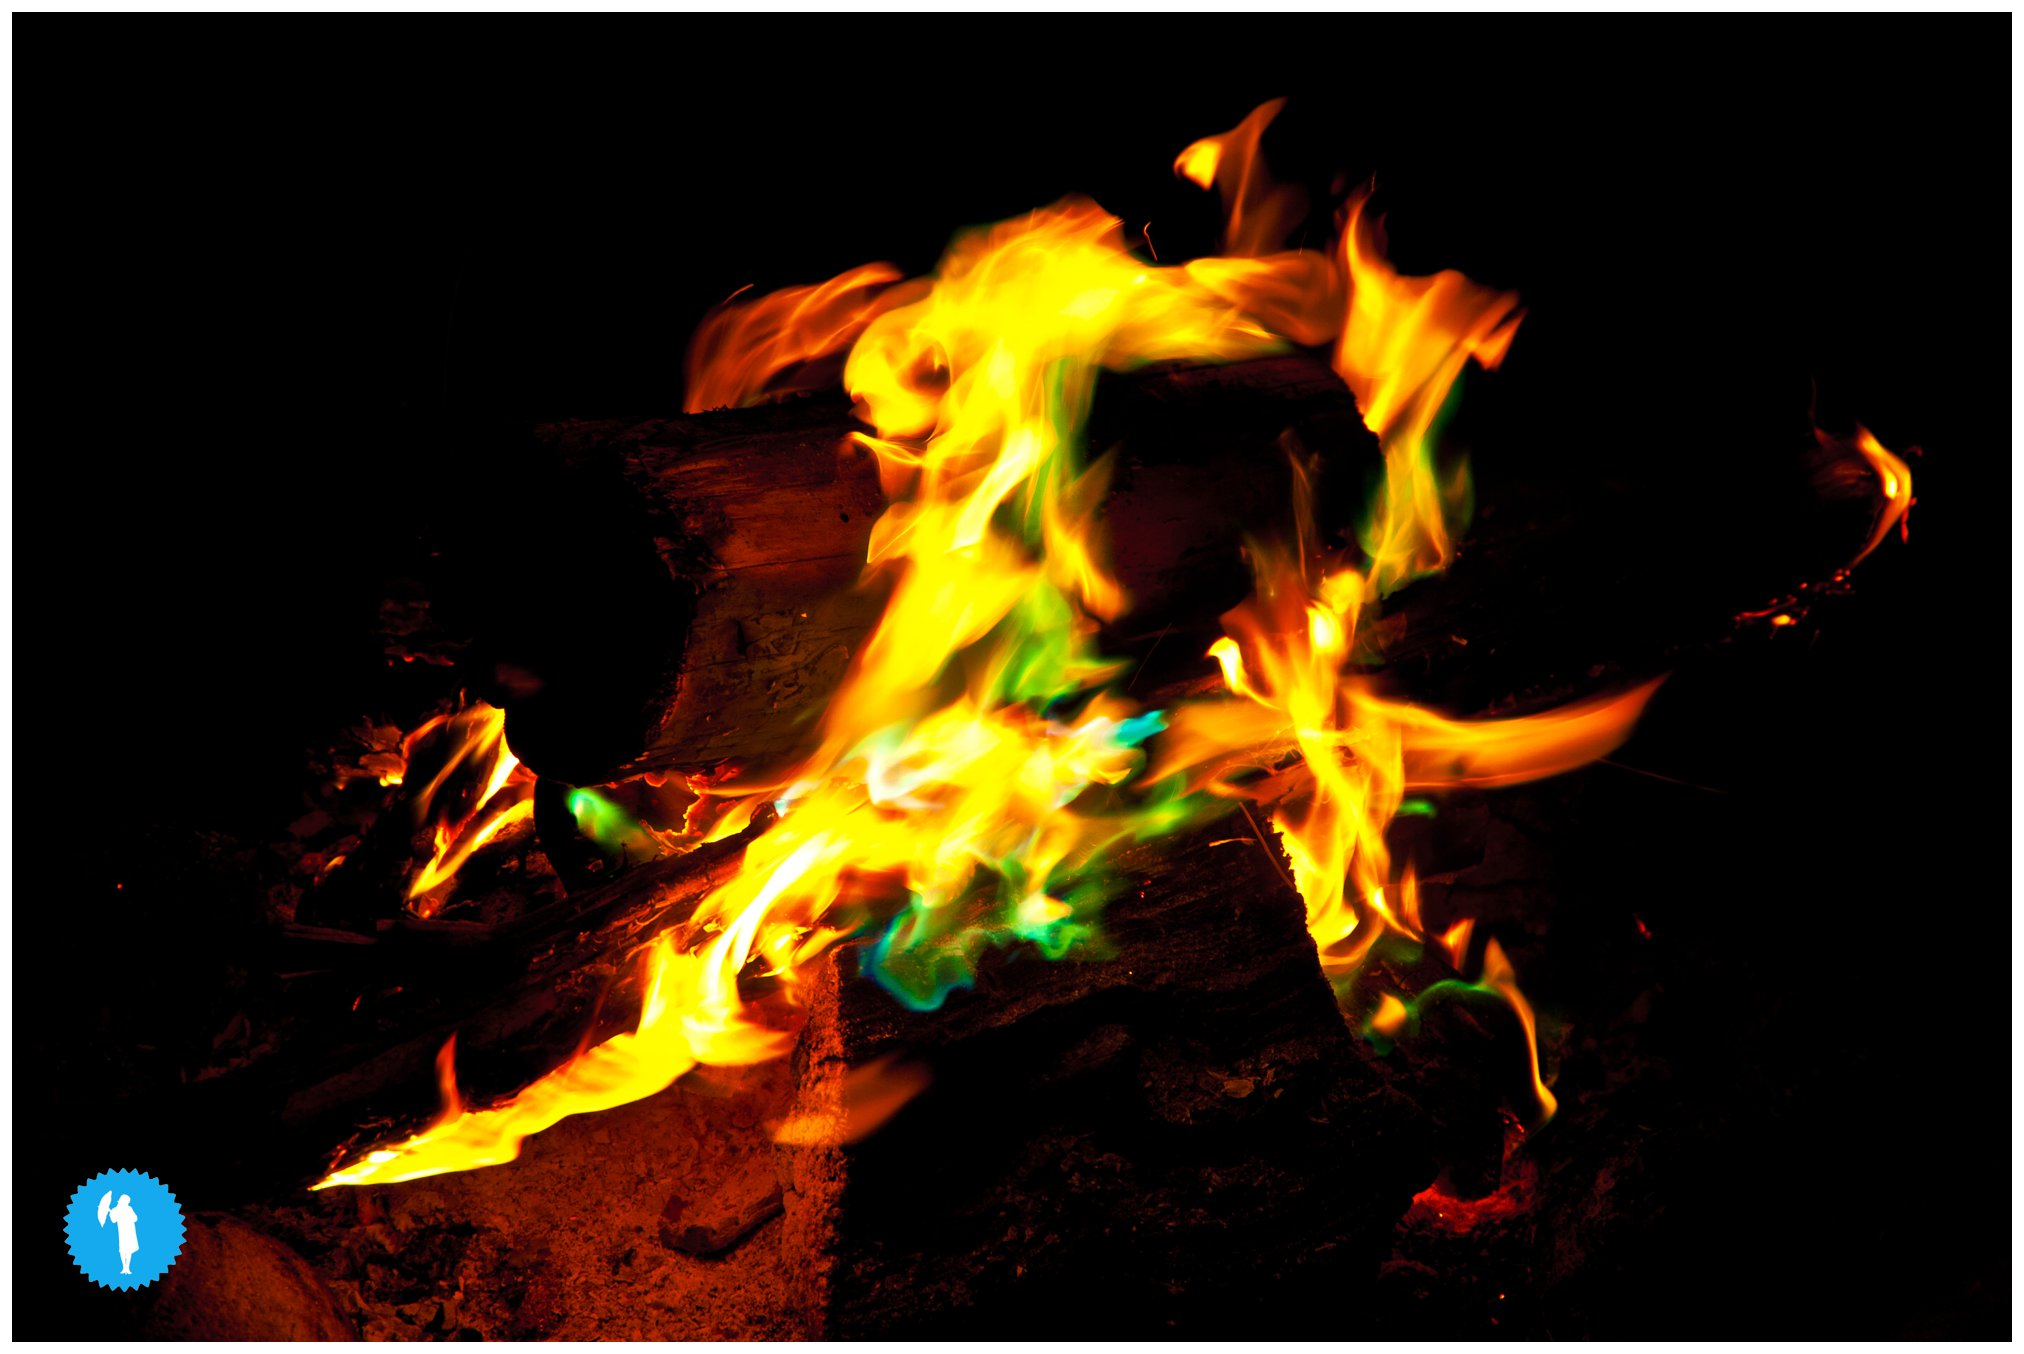 Fire Emily Beatty Imagery, 2013